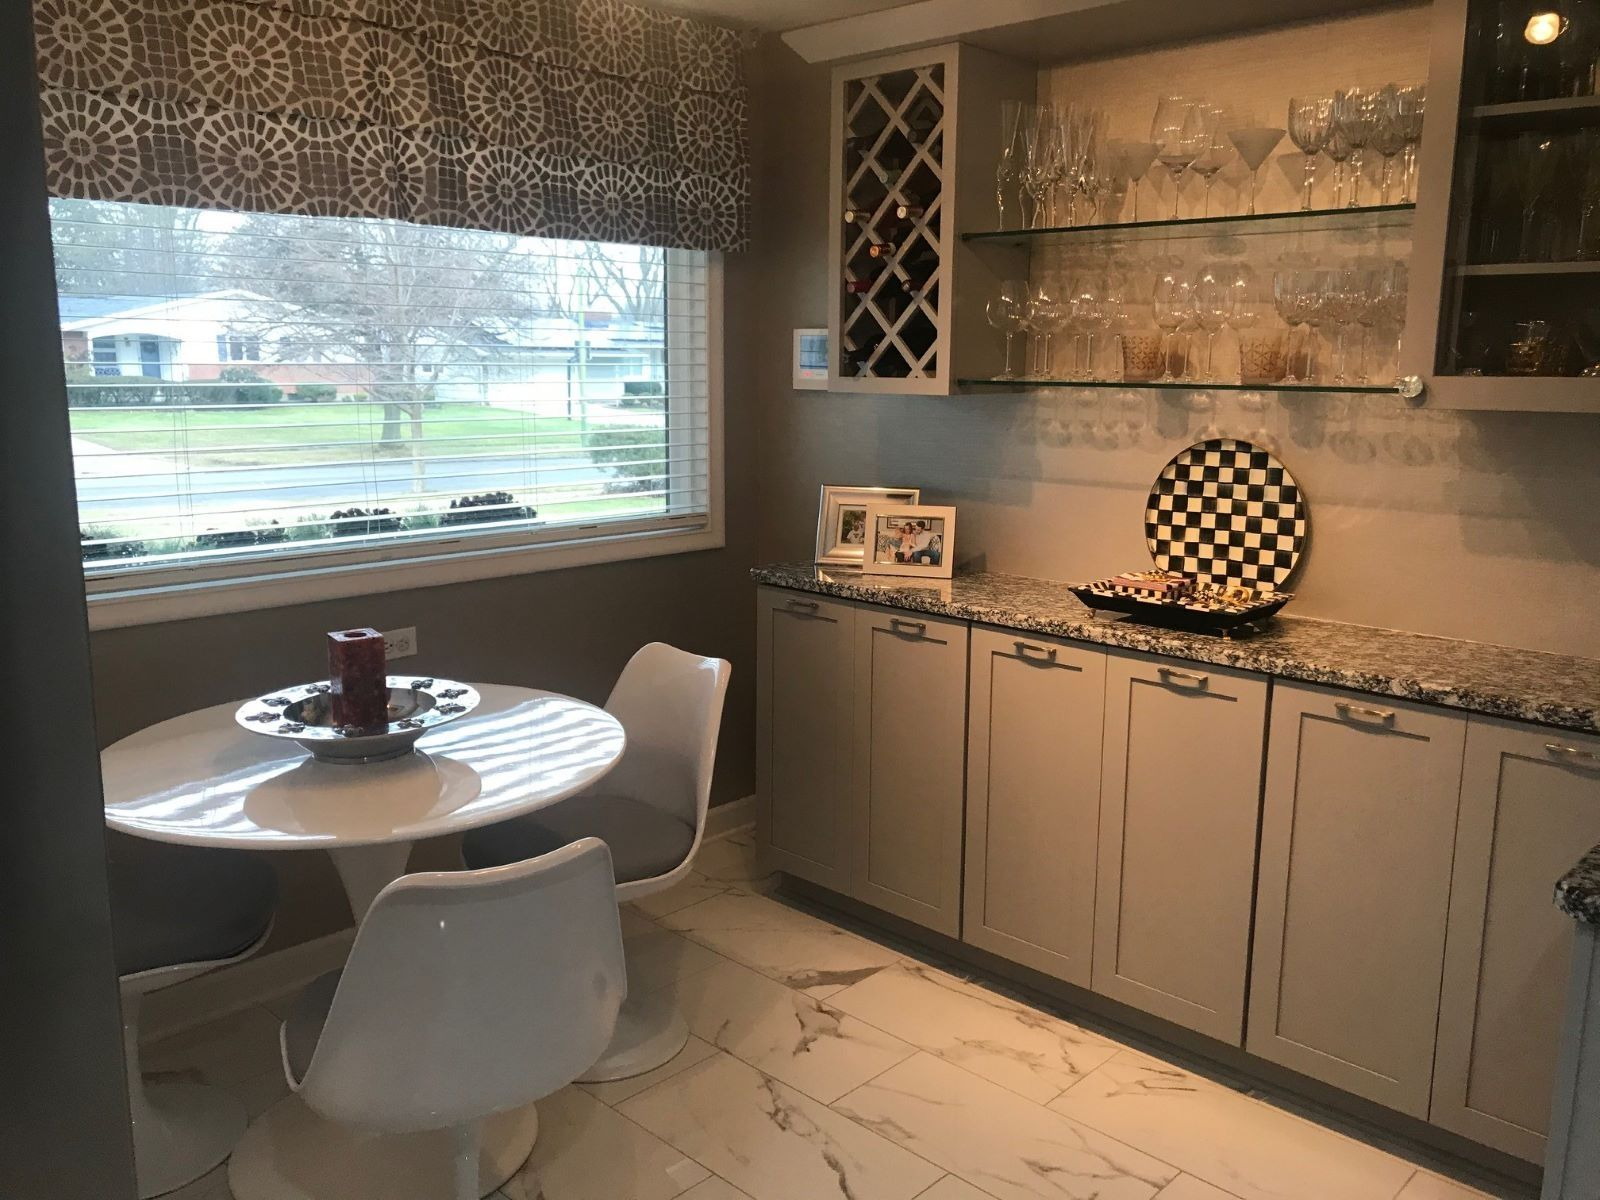 Nancy A. Gaglione added storage for glassware and wine bottles in the eating area.